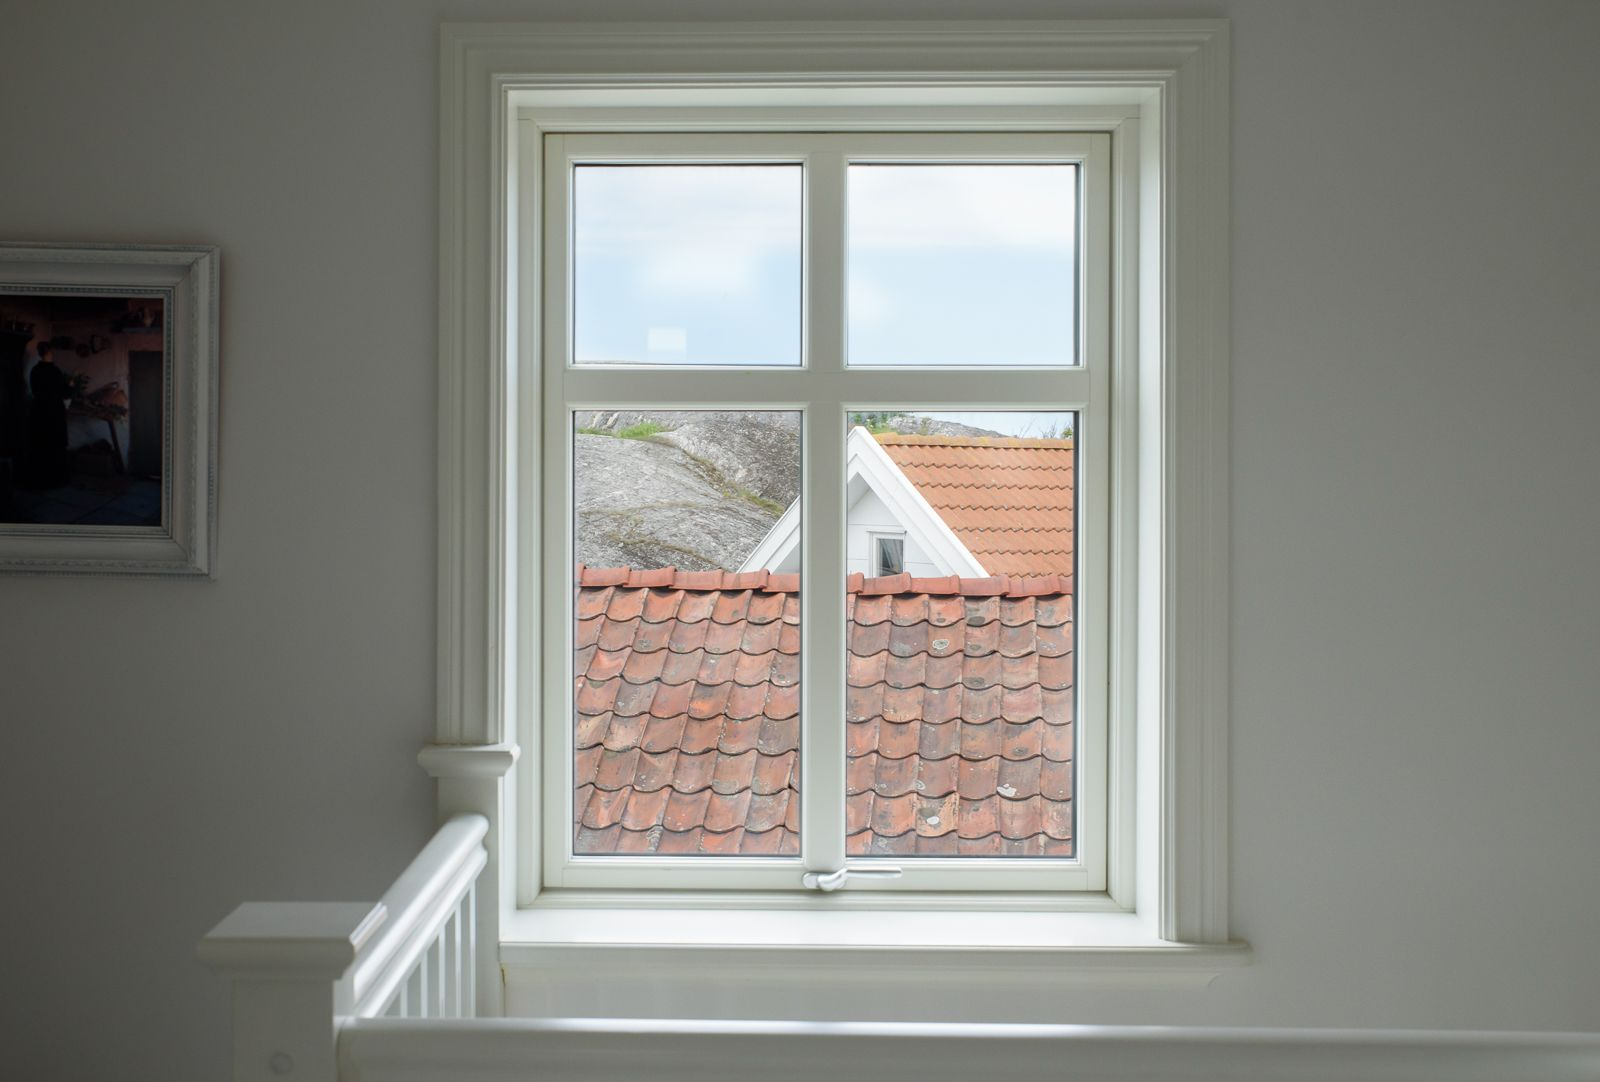 Inspirational Projects Using Westcoast High Quality Swedish Composite Windows And Doors On The West Coast Of Sweden Windows Windows And Doors Composite Windows